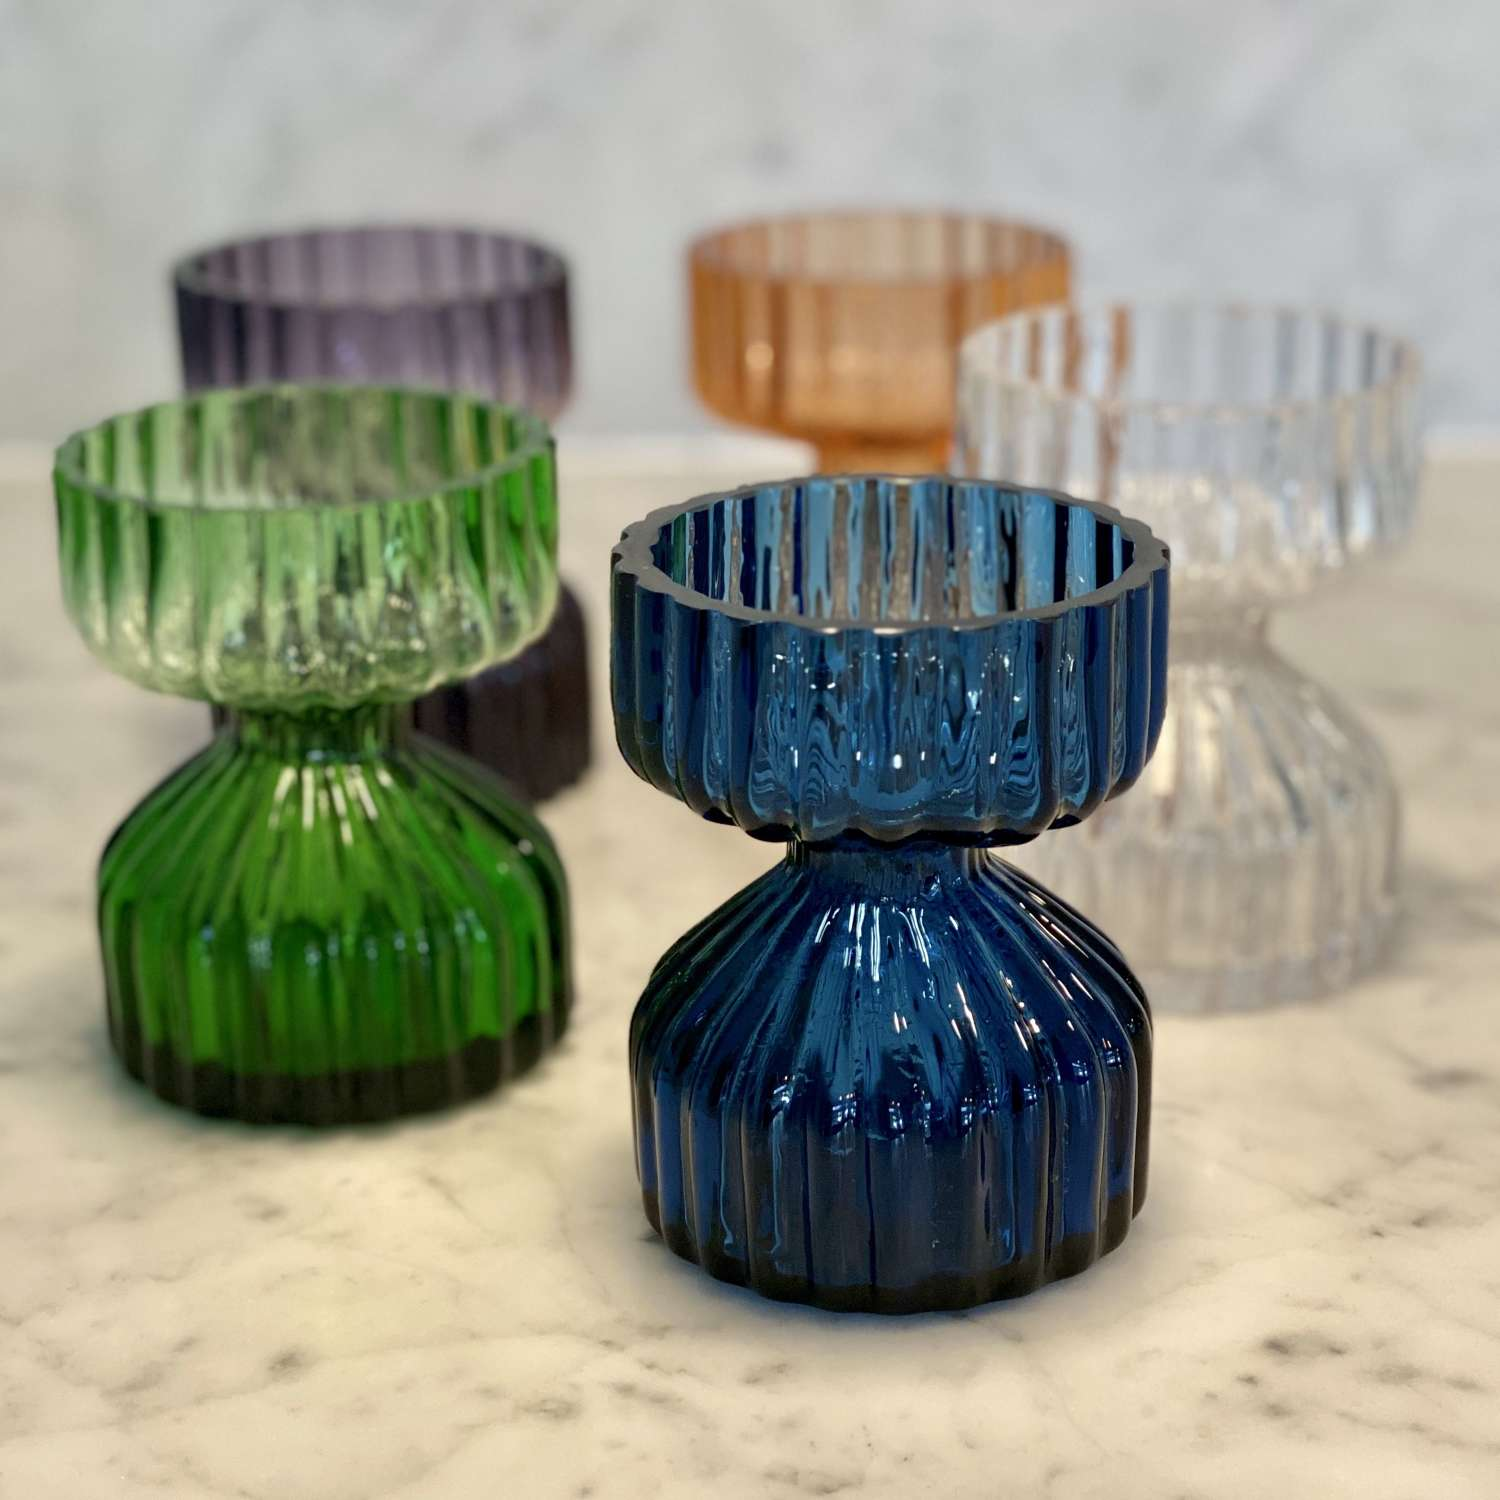 A cluster of Wedgwood glass candlestick holders or posy vases